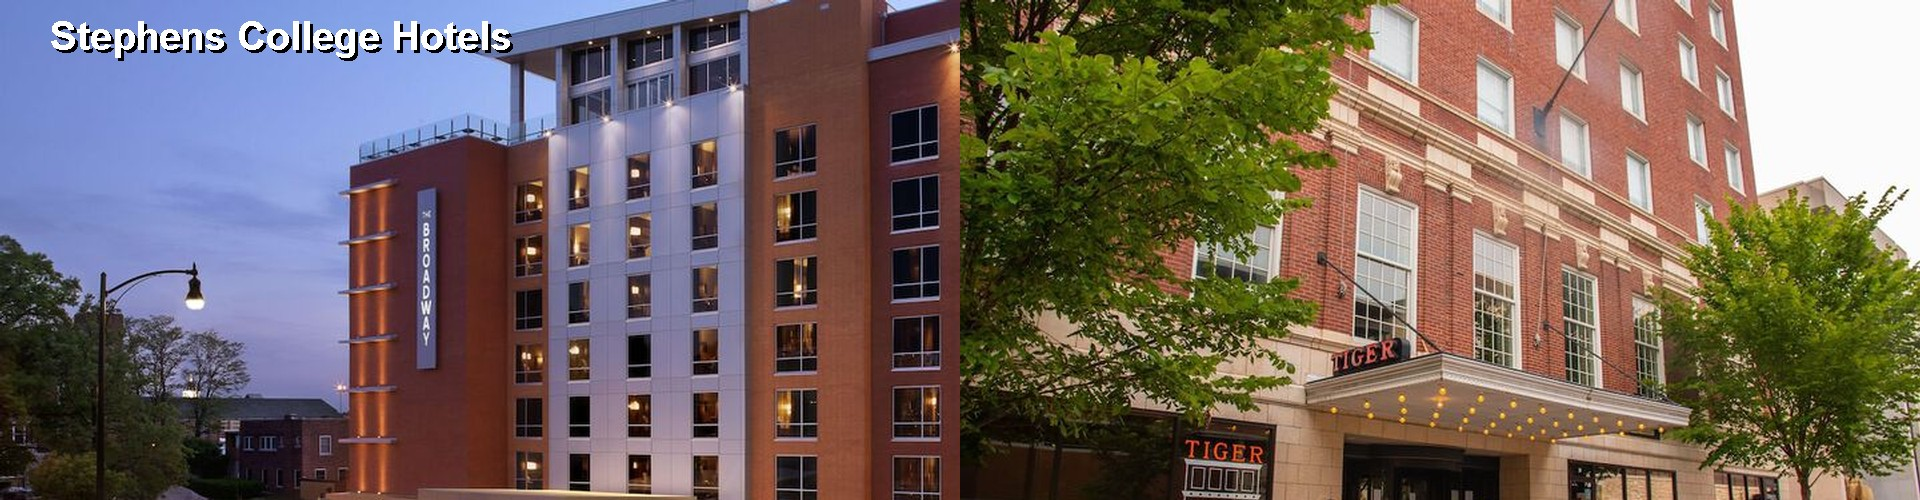 4 Best Hotels near Stephens College